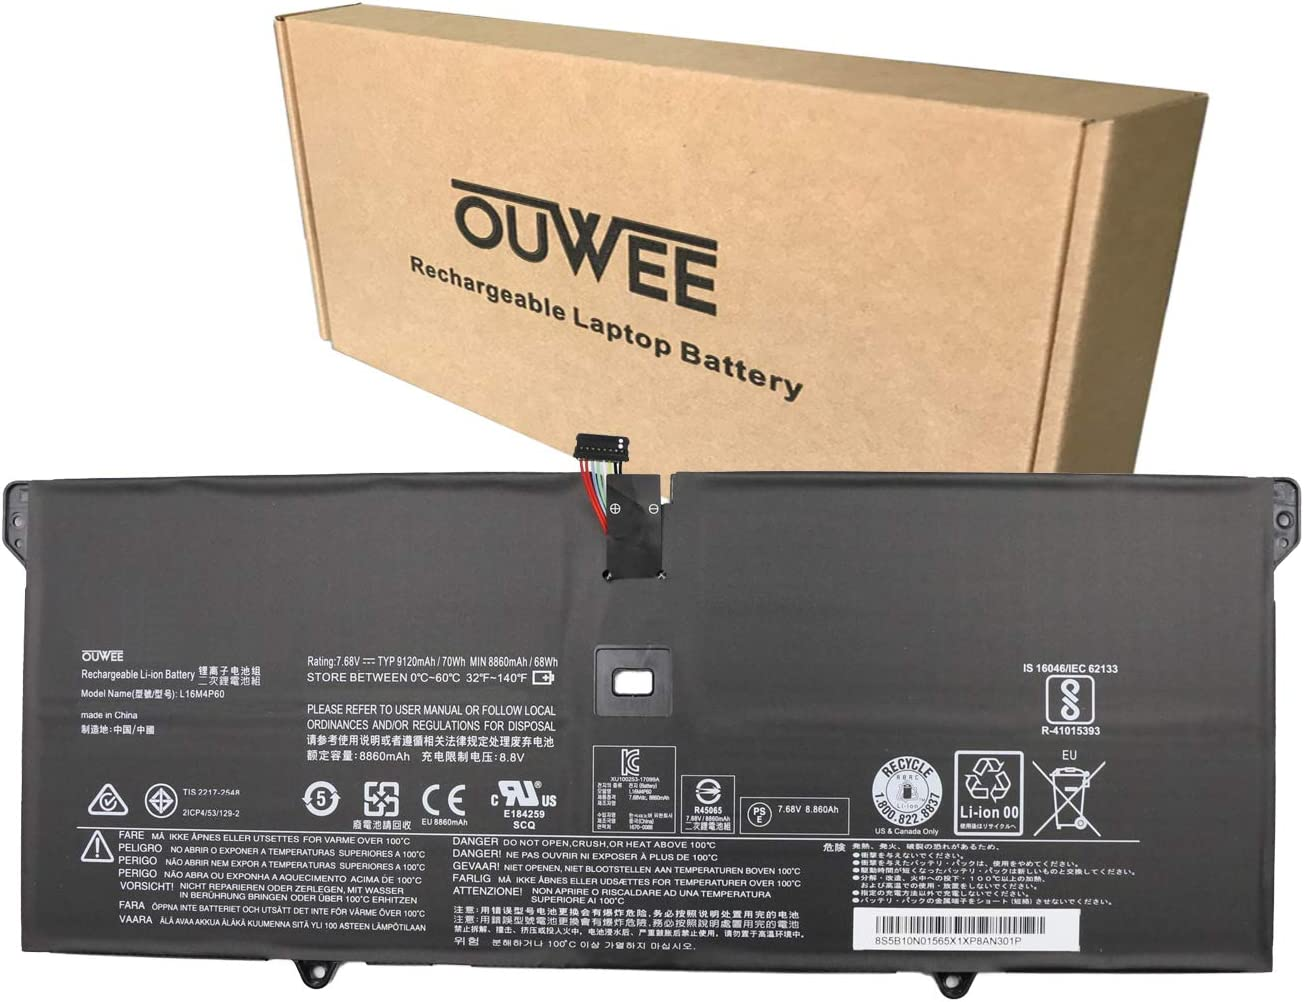 OUWEE L16M4P60 Laptop Battery Compatible with Lenovo Ideapad Flex Pro-13IKB Yoga 920-13IKB Glass Series Notebook 5B10N01565 5B10W67249 L16C4P61 5B10N17665 7.68V 70Wh 9120mAh 4-Cell